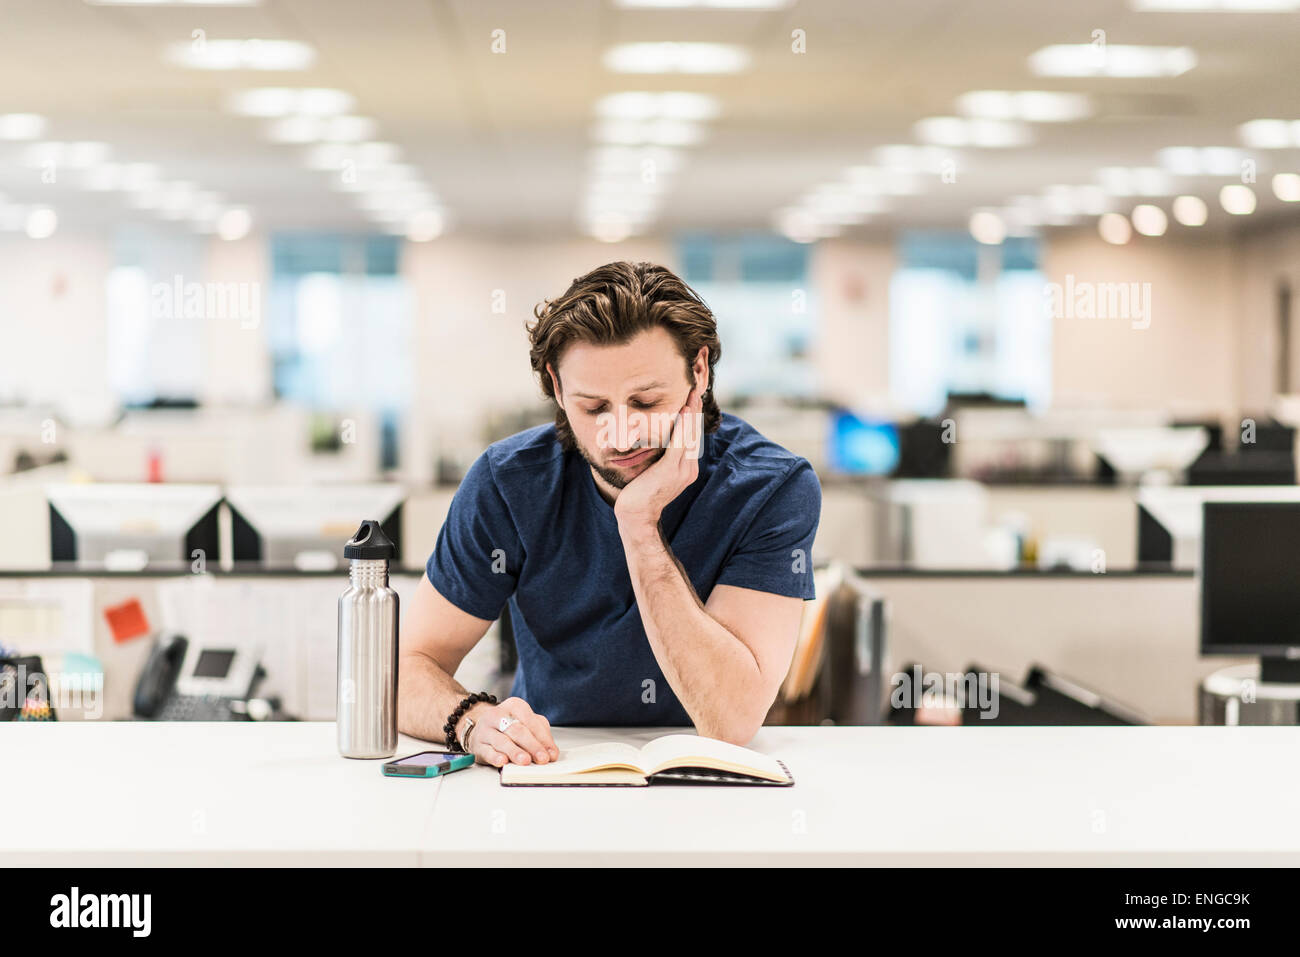 A man leaning on  his elbow and looking at an open book on an office desk. - Stock Image